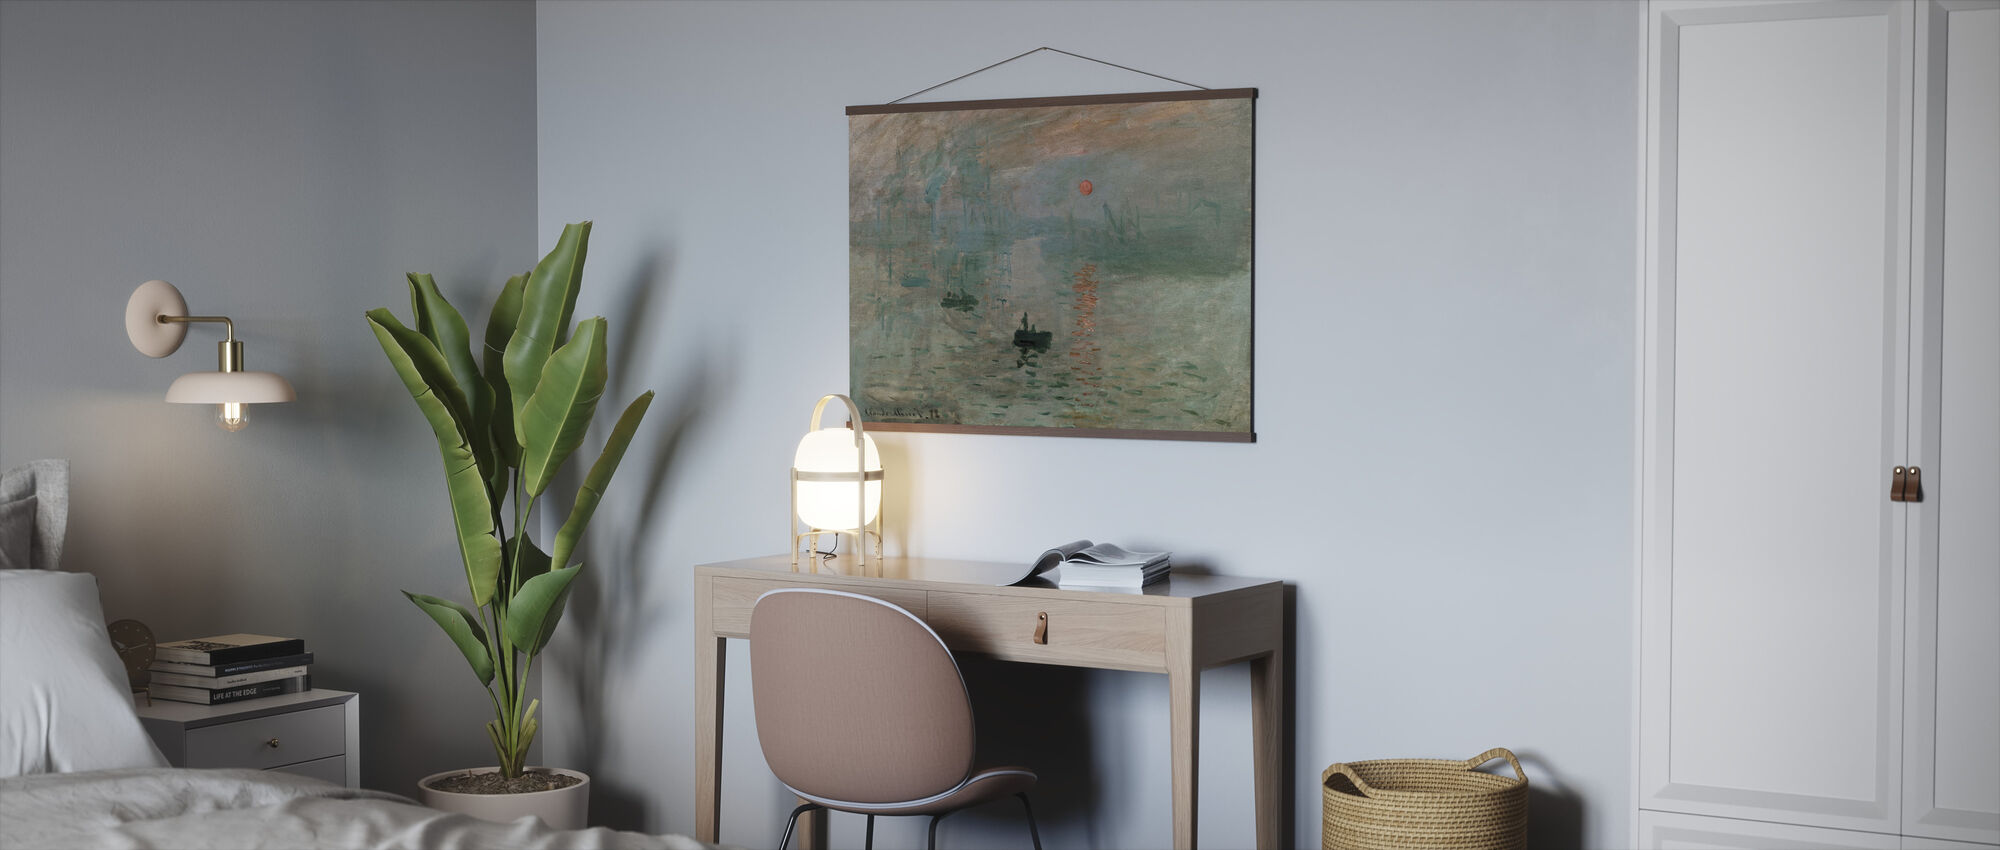 Monet, Claud - Impression - Poster - Office